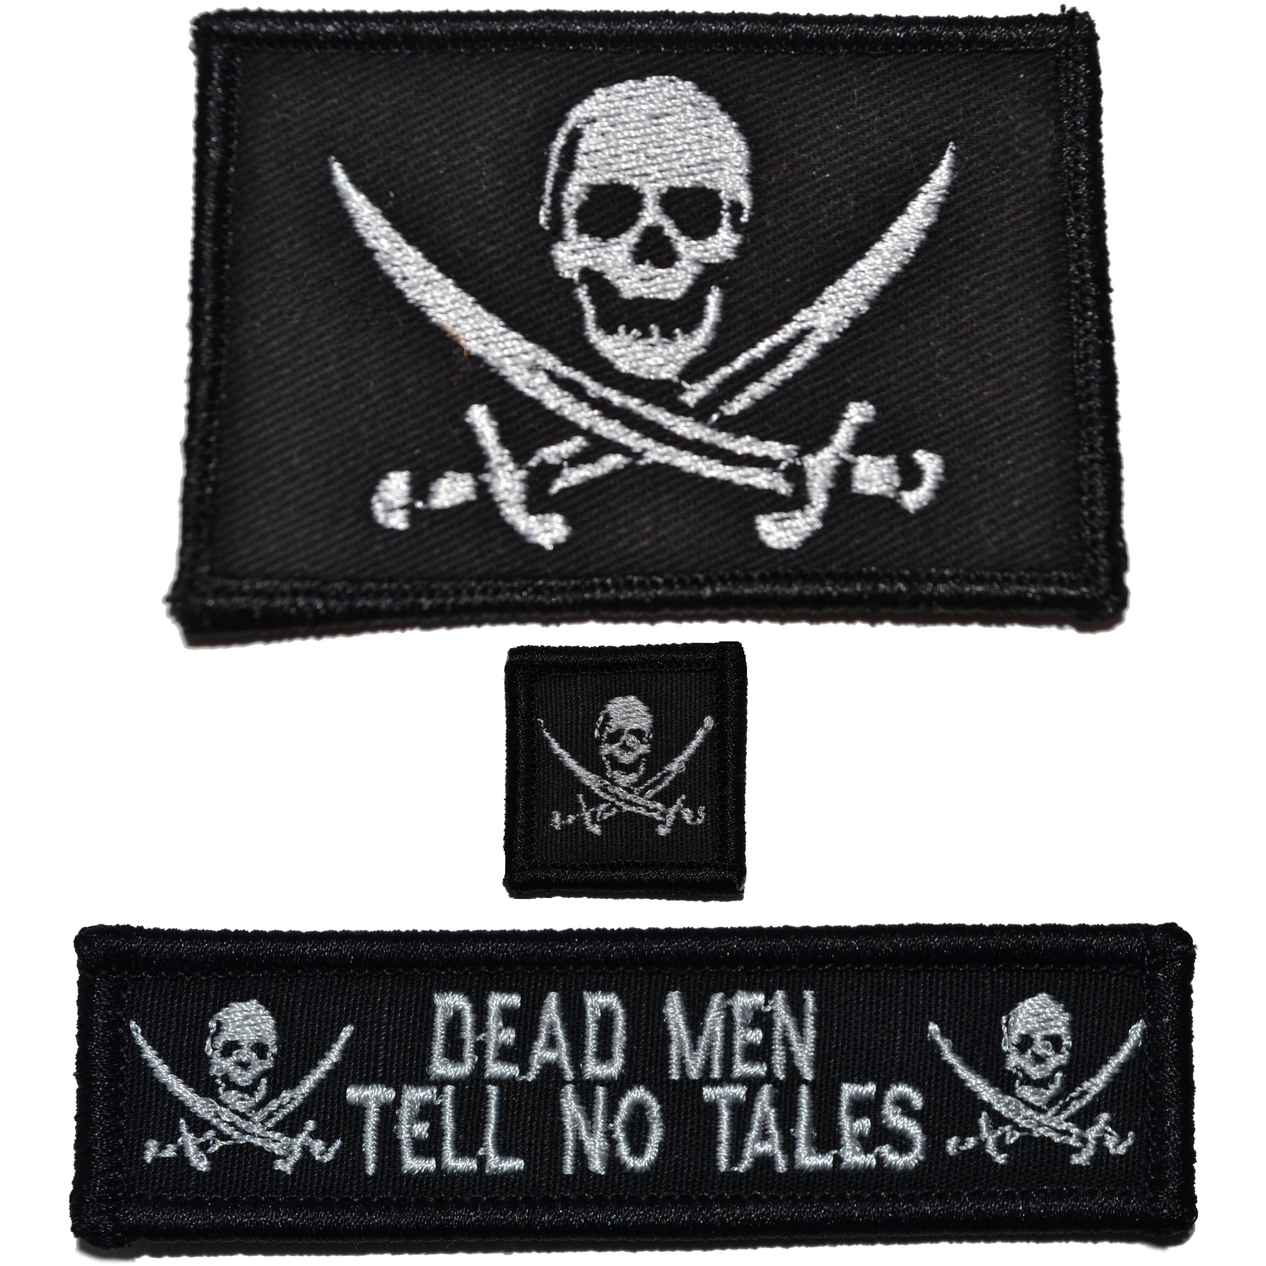 Patch Set: Pirate Jolly Roger 2x3, Dead Men Tell No Tales 1x3.75, Jolly Roger 1x1